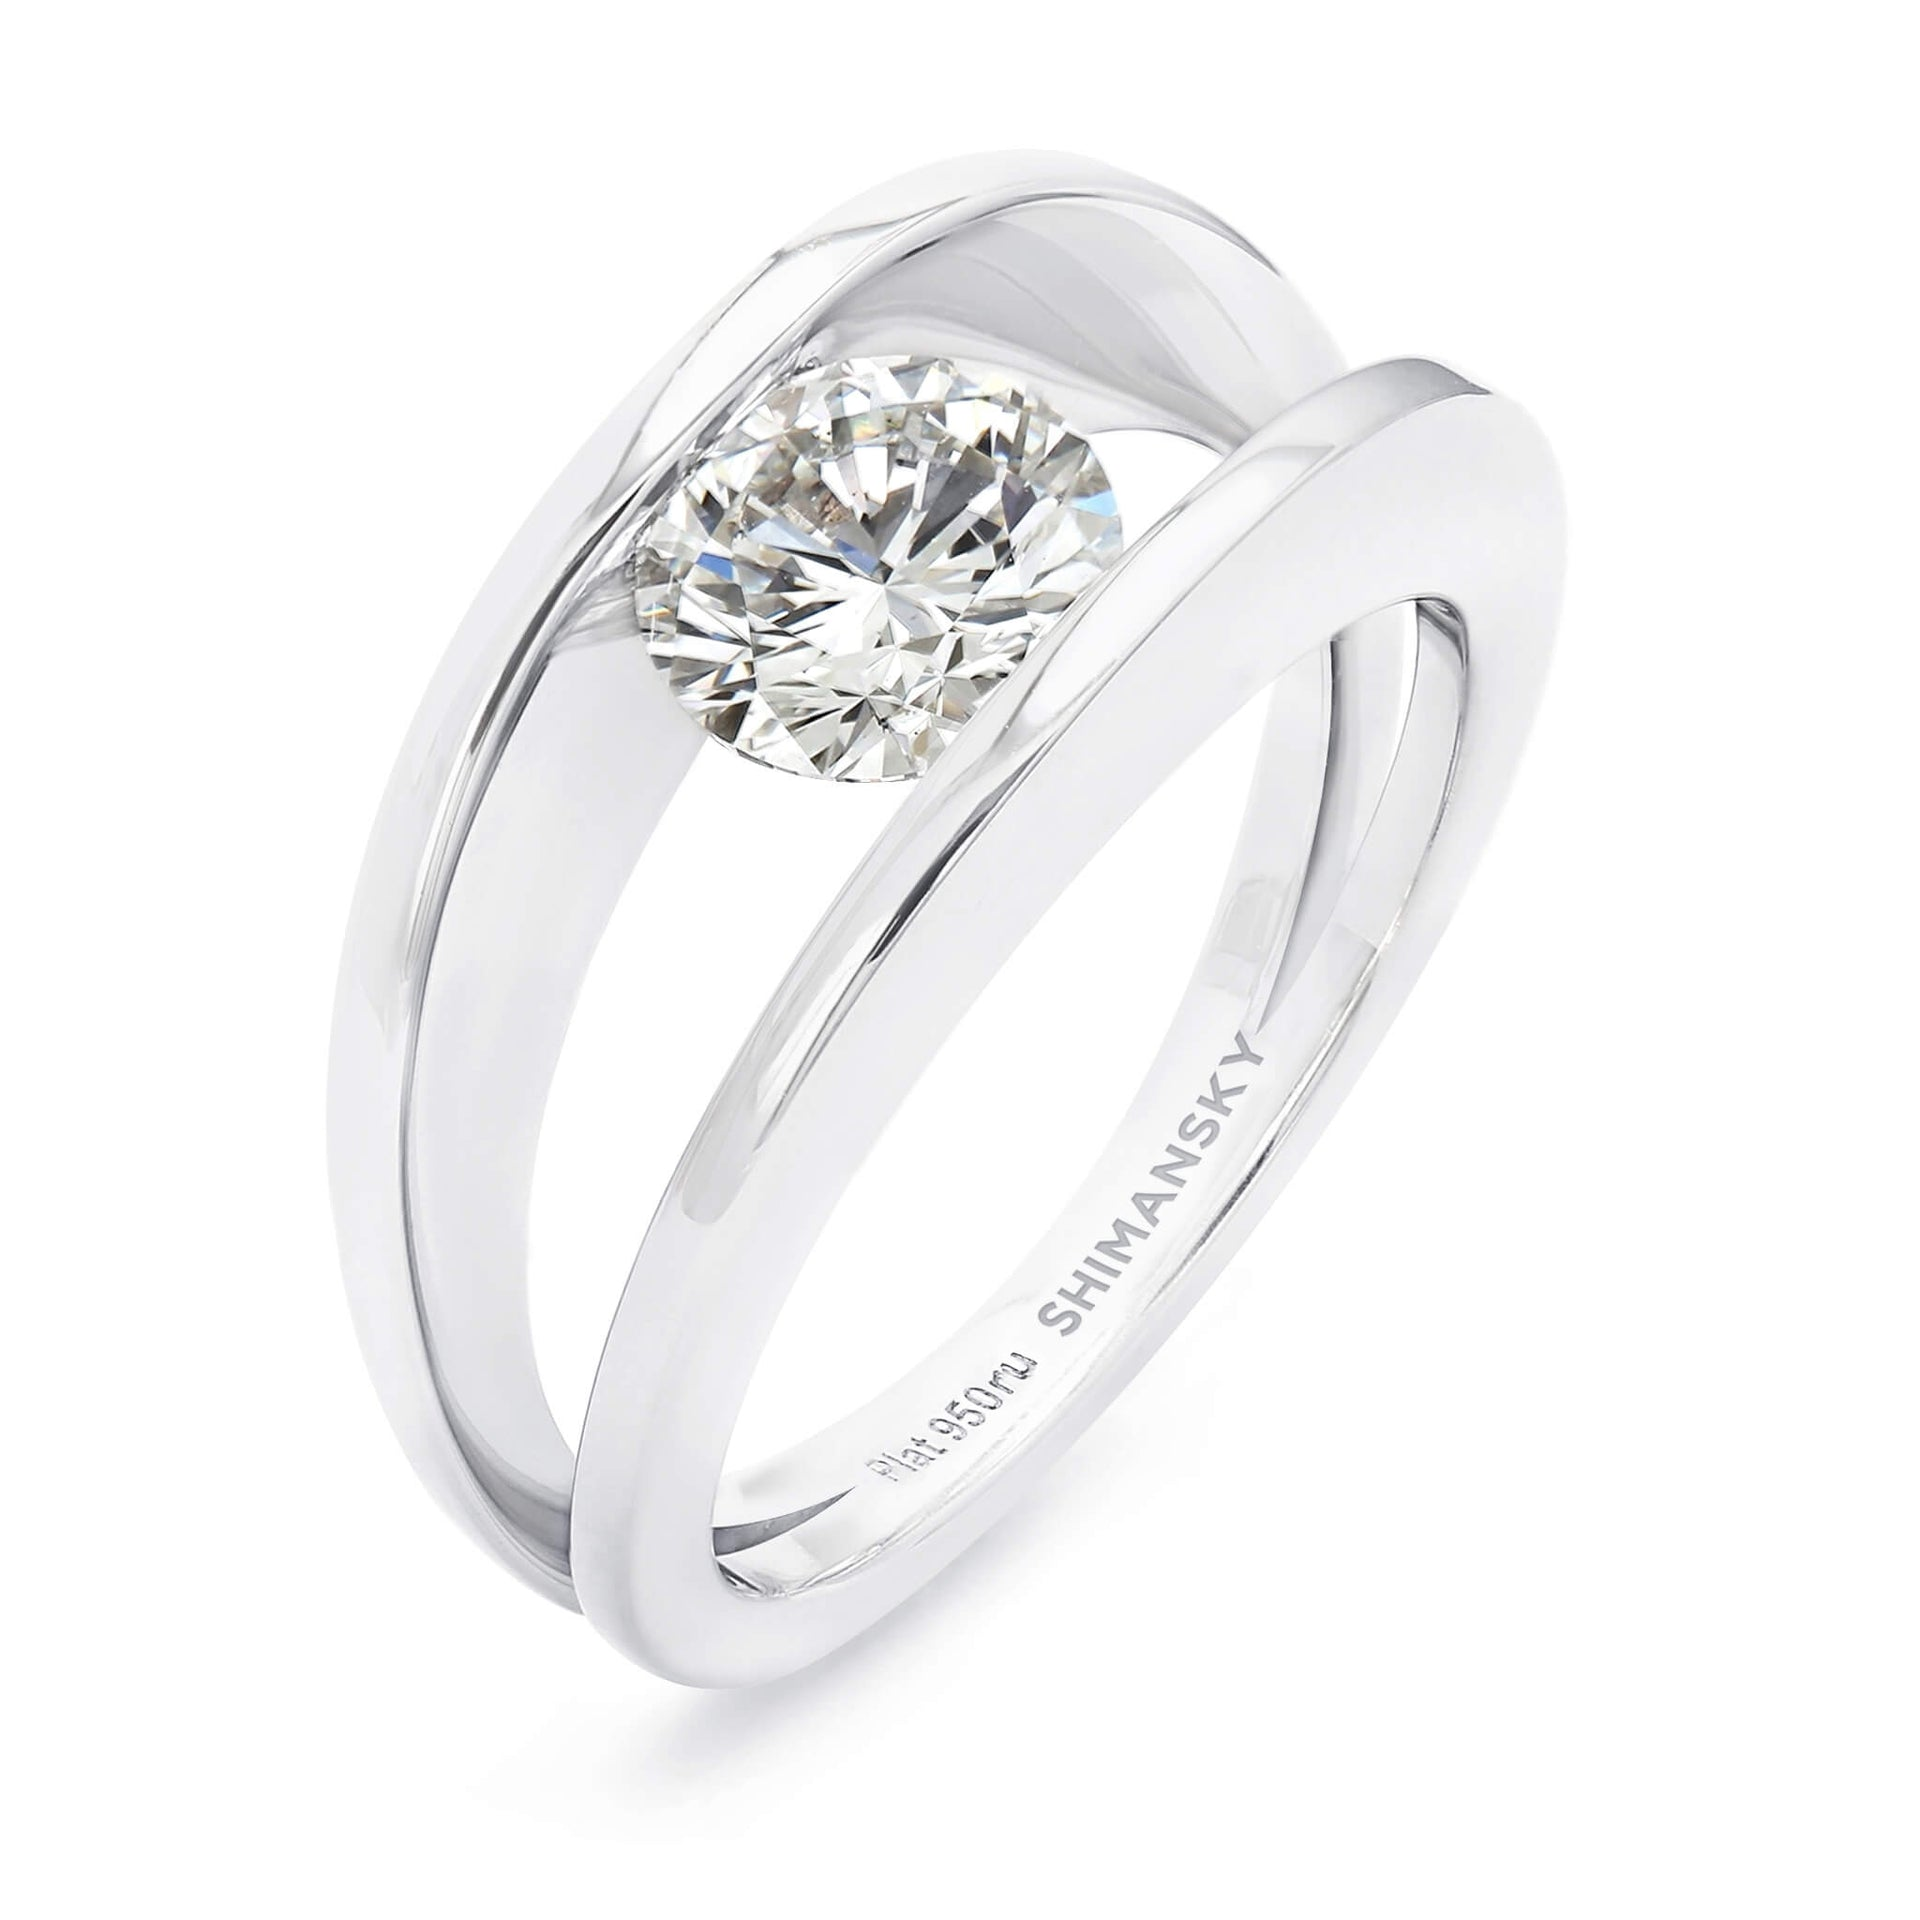 The Iconic 1ct Millennium Diamond Ring Crafted in Platinum 3D View